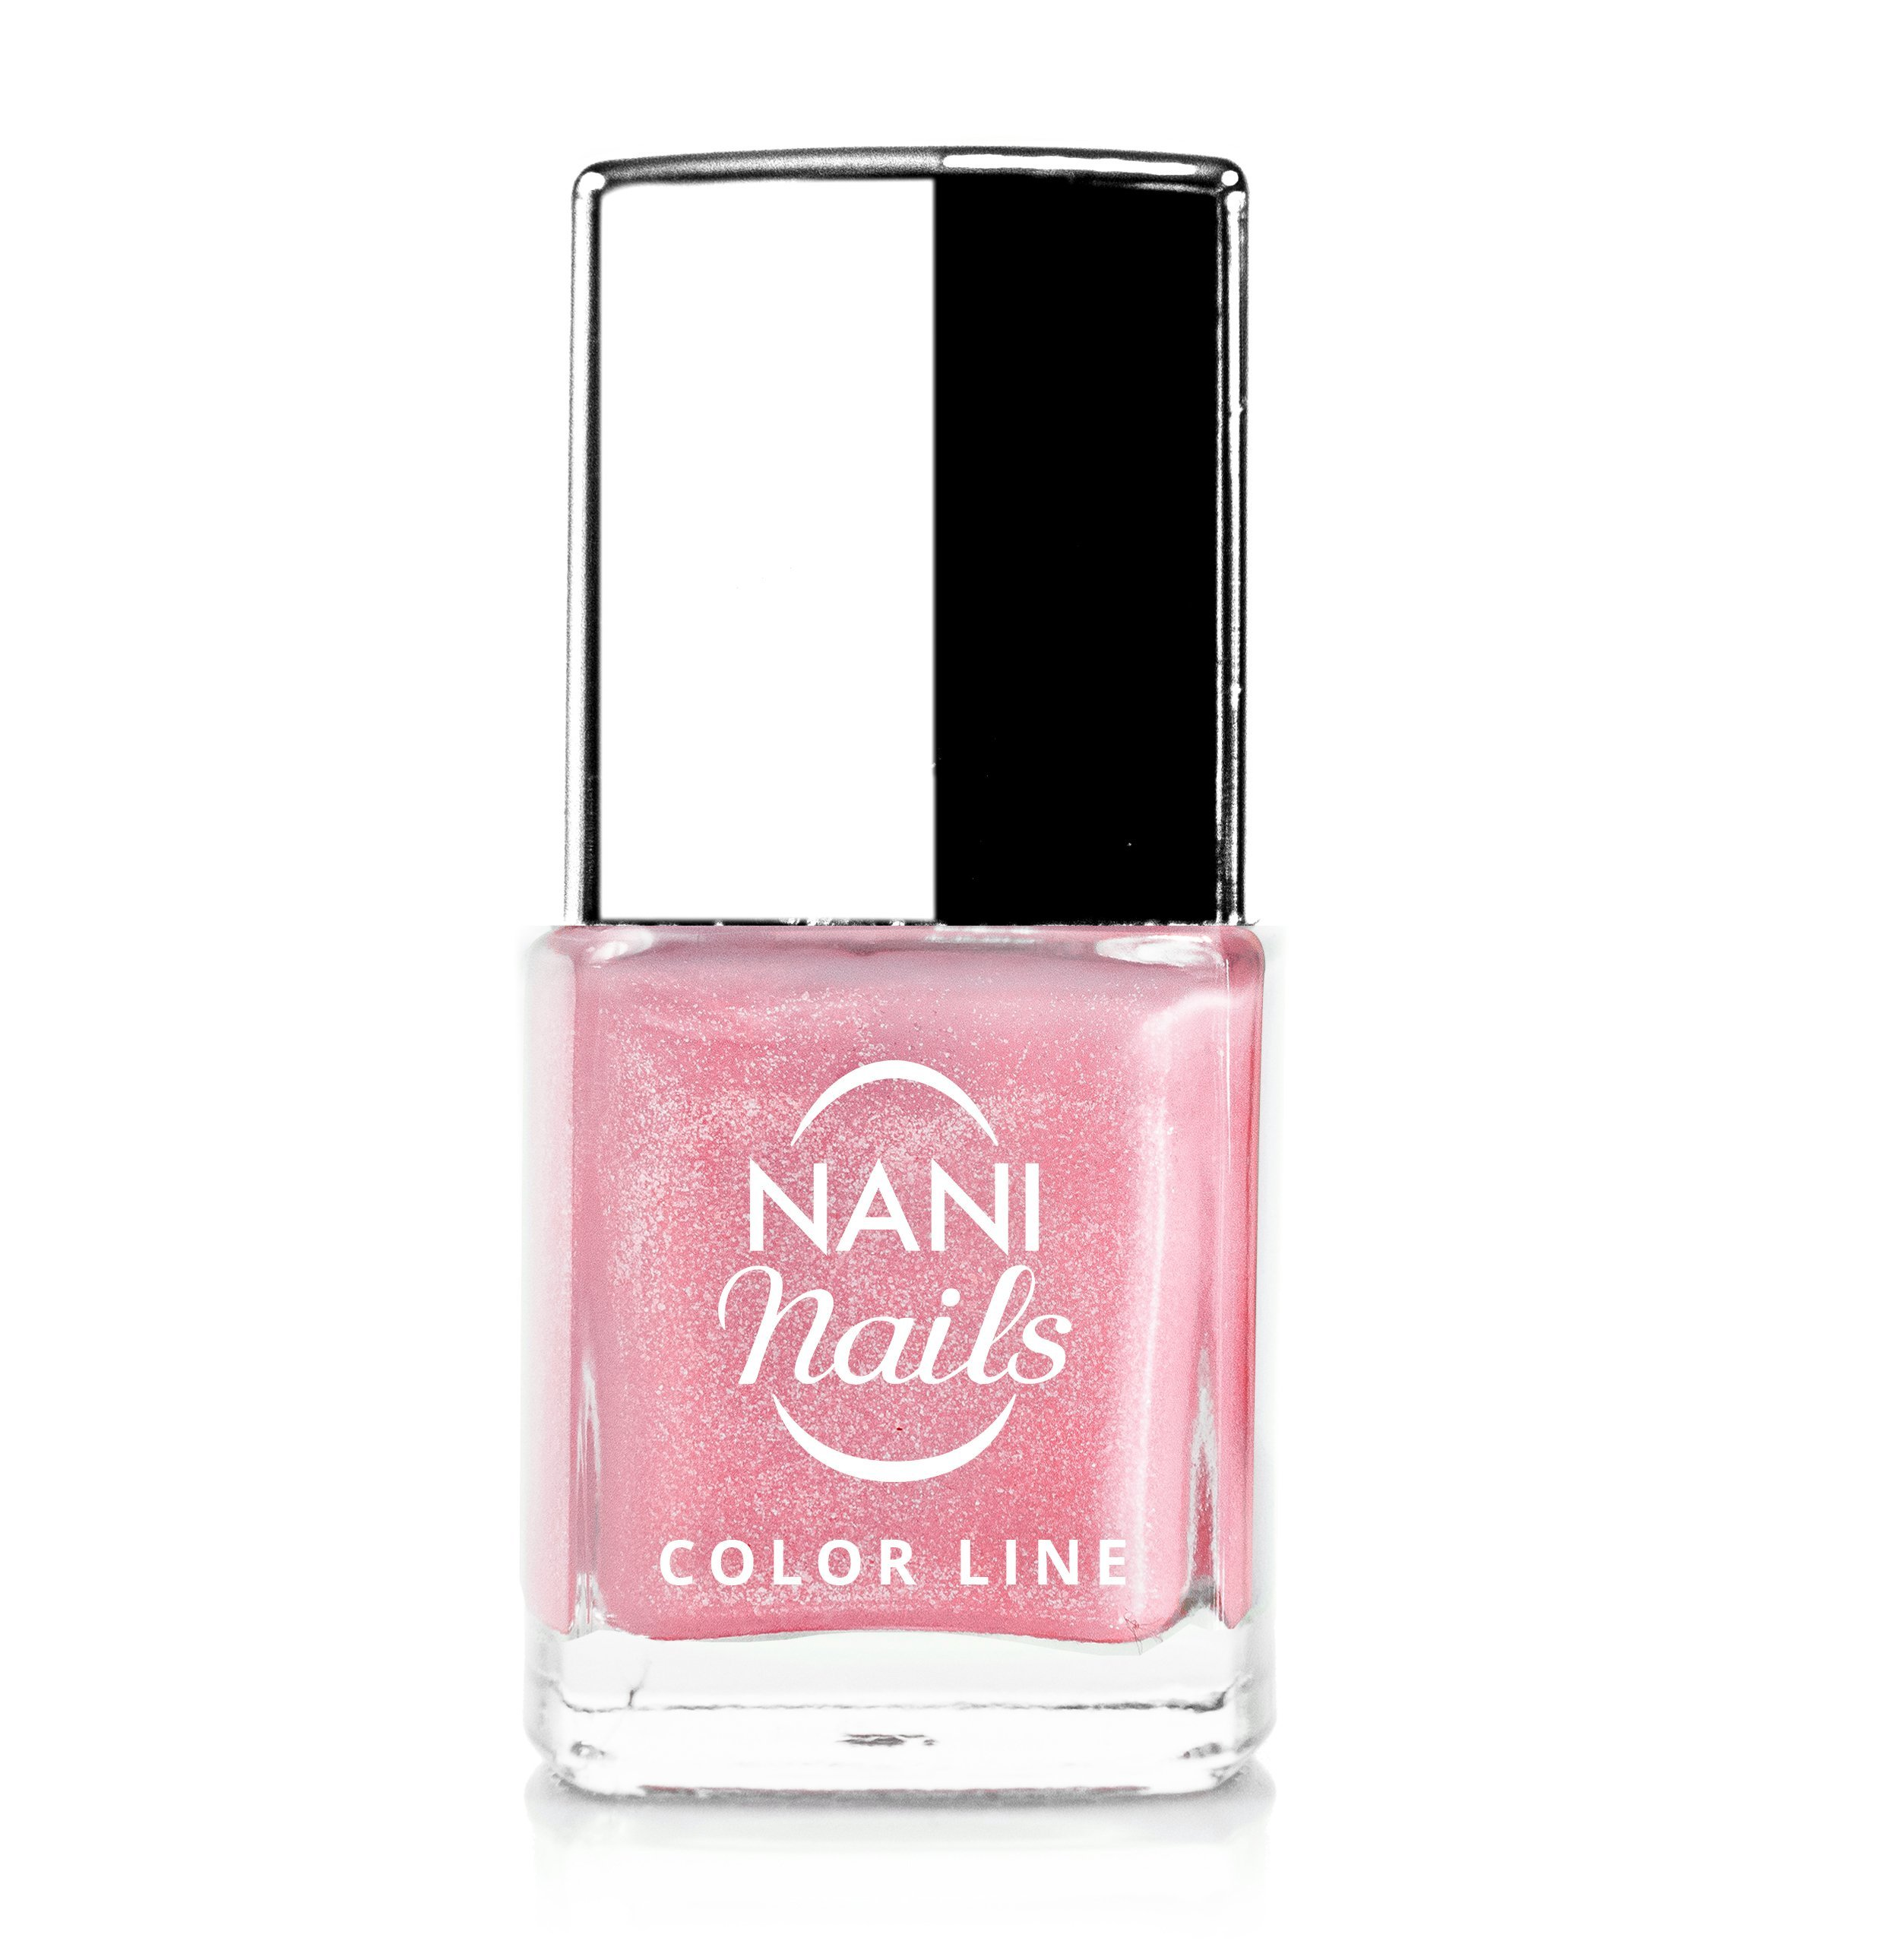 NANI lak Color Line 9 ml - 112